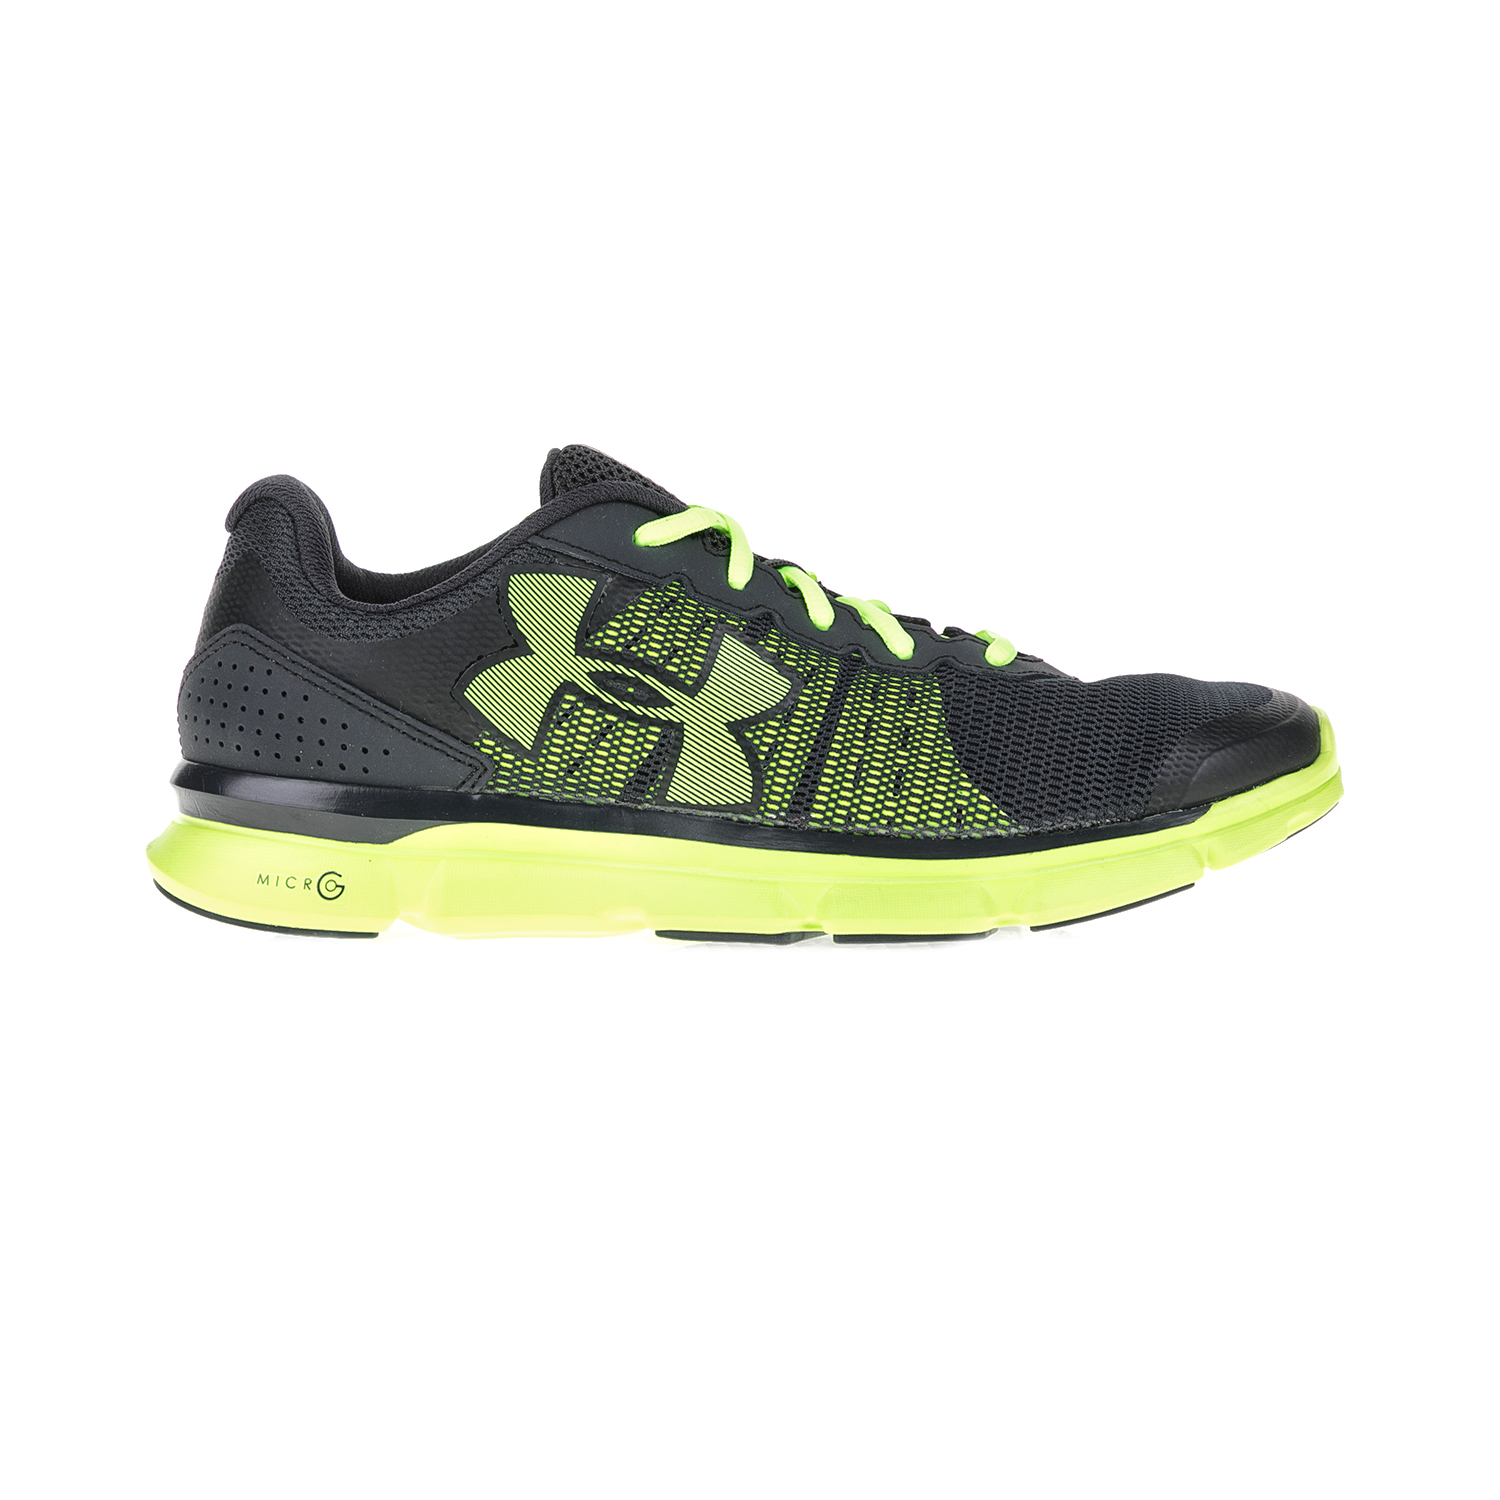 UNDER ARMOUR - Ανδρικά αθλητικά παπούτσια UNDER ARMOUR MICRO G SPEED SWIFT μαύρα-πράσινα